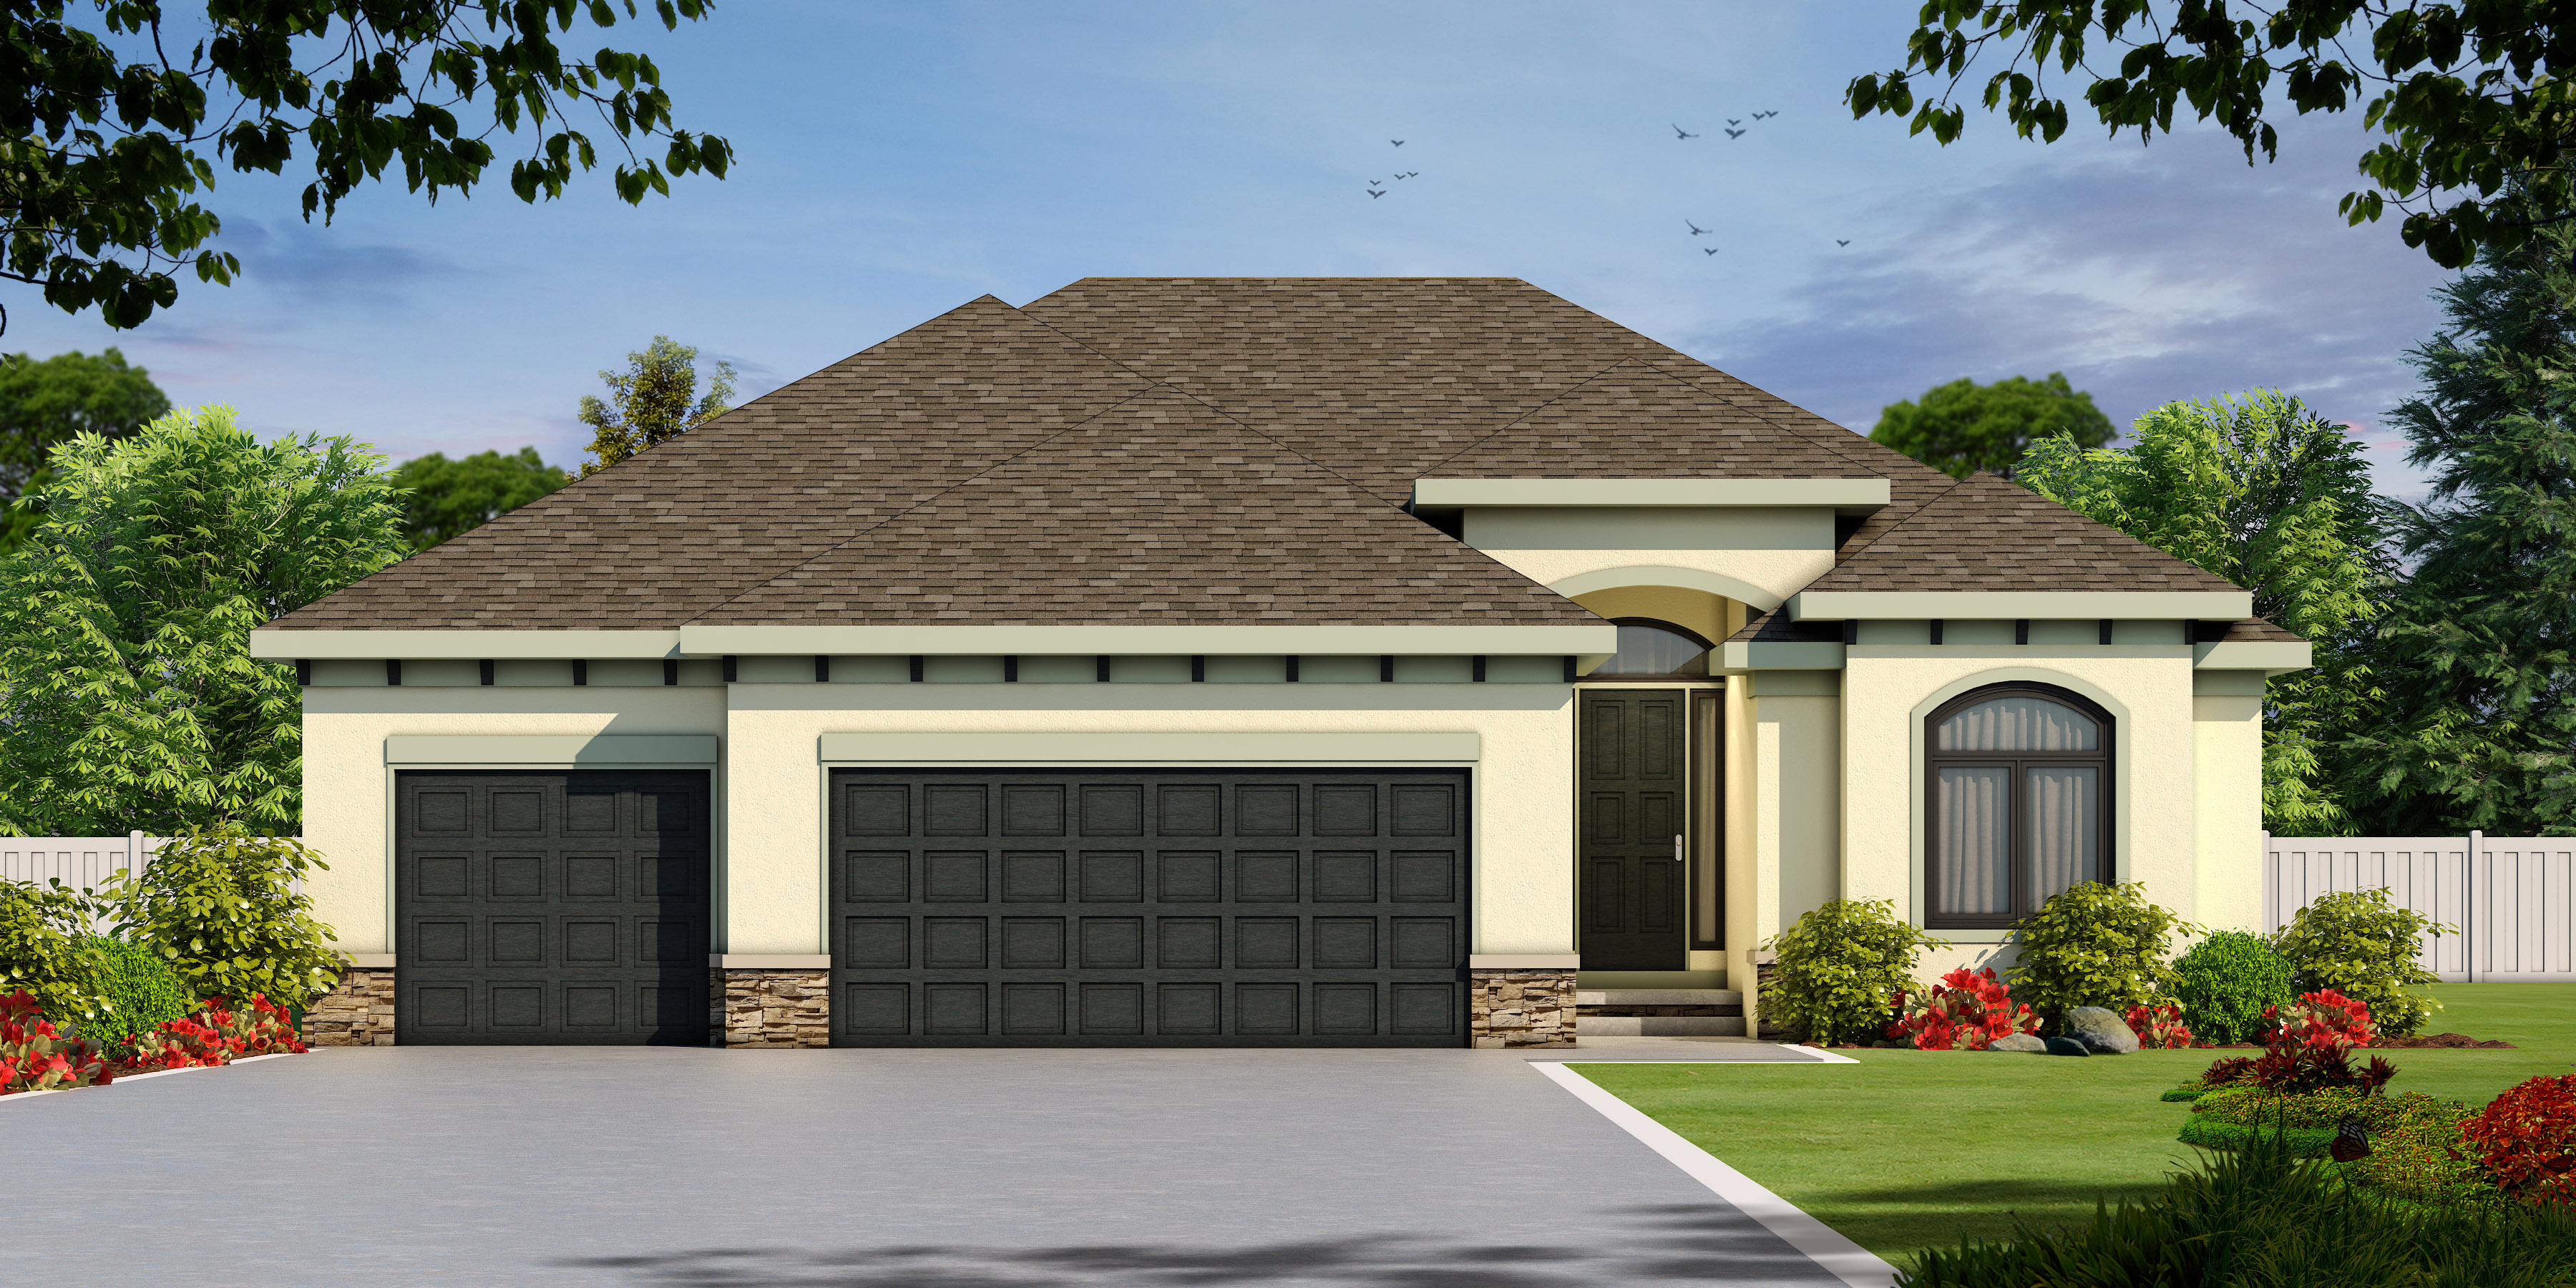 The Pepperwood by Ashlar Homes